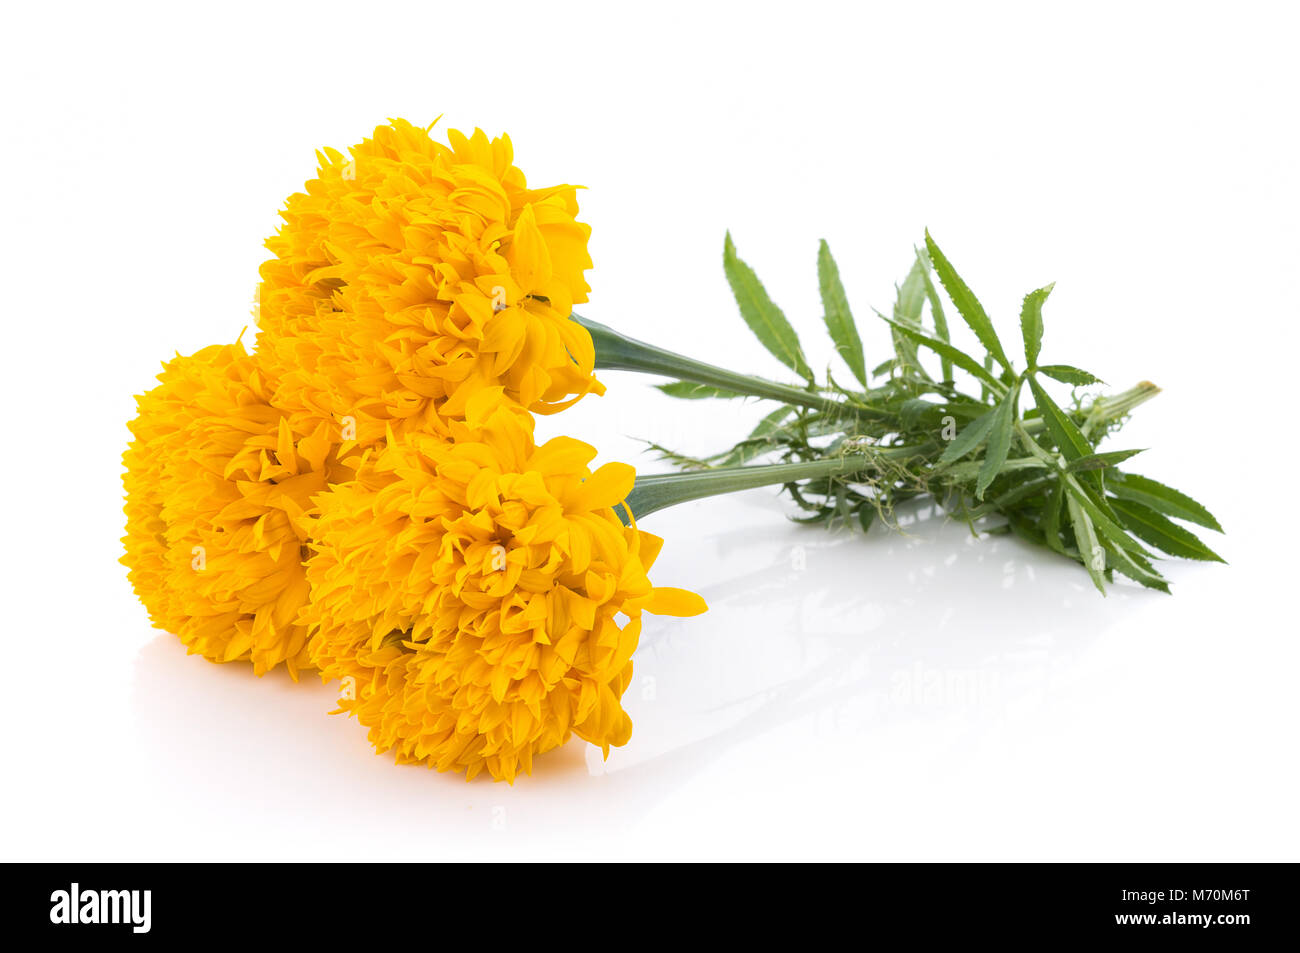 Marigold Flowers On White Background Stock Photo 176422144 Alamy